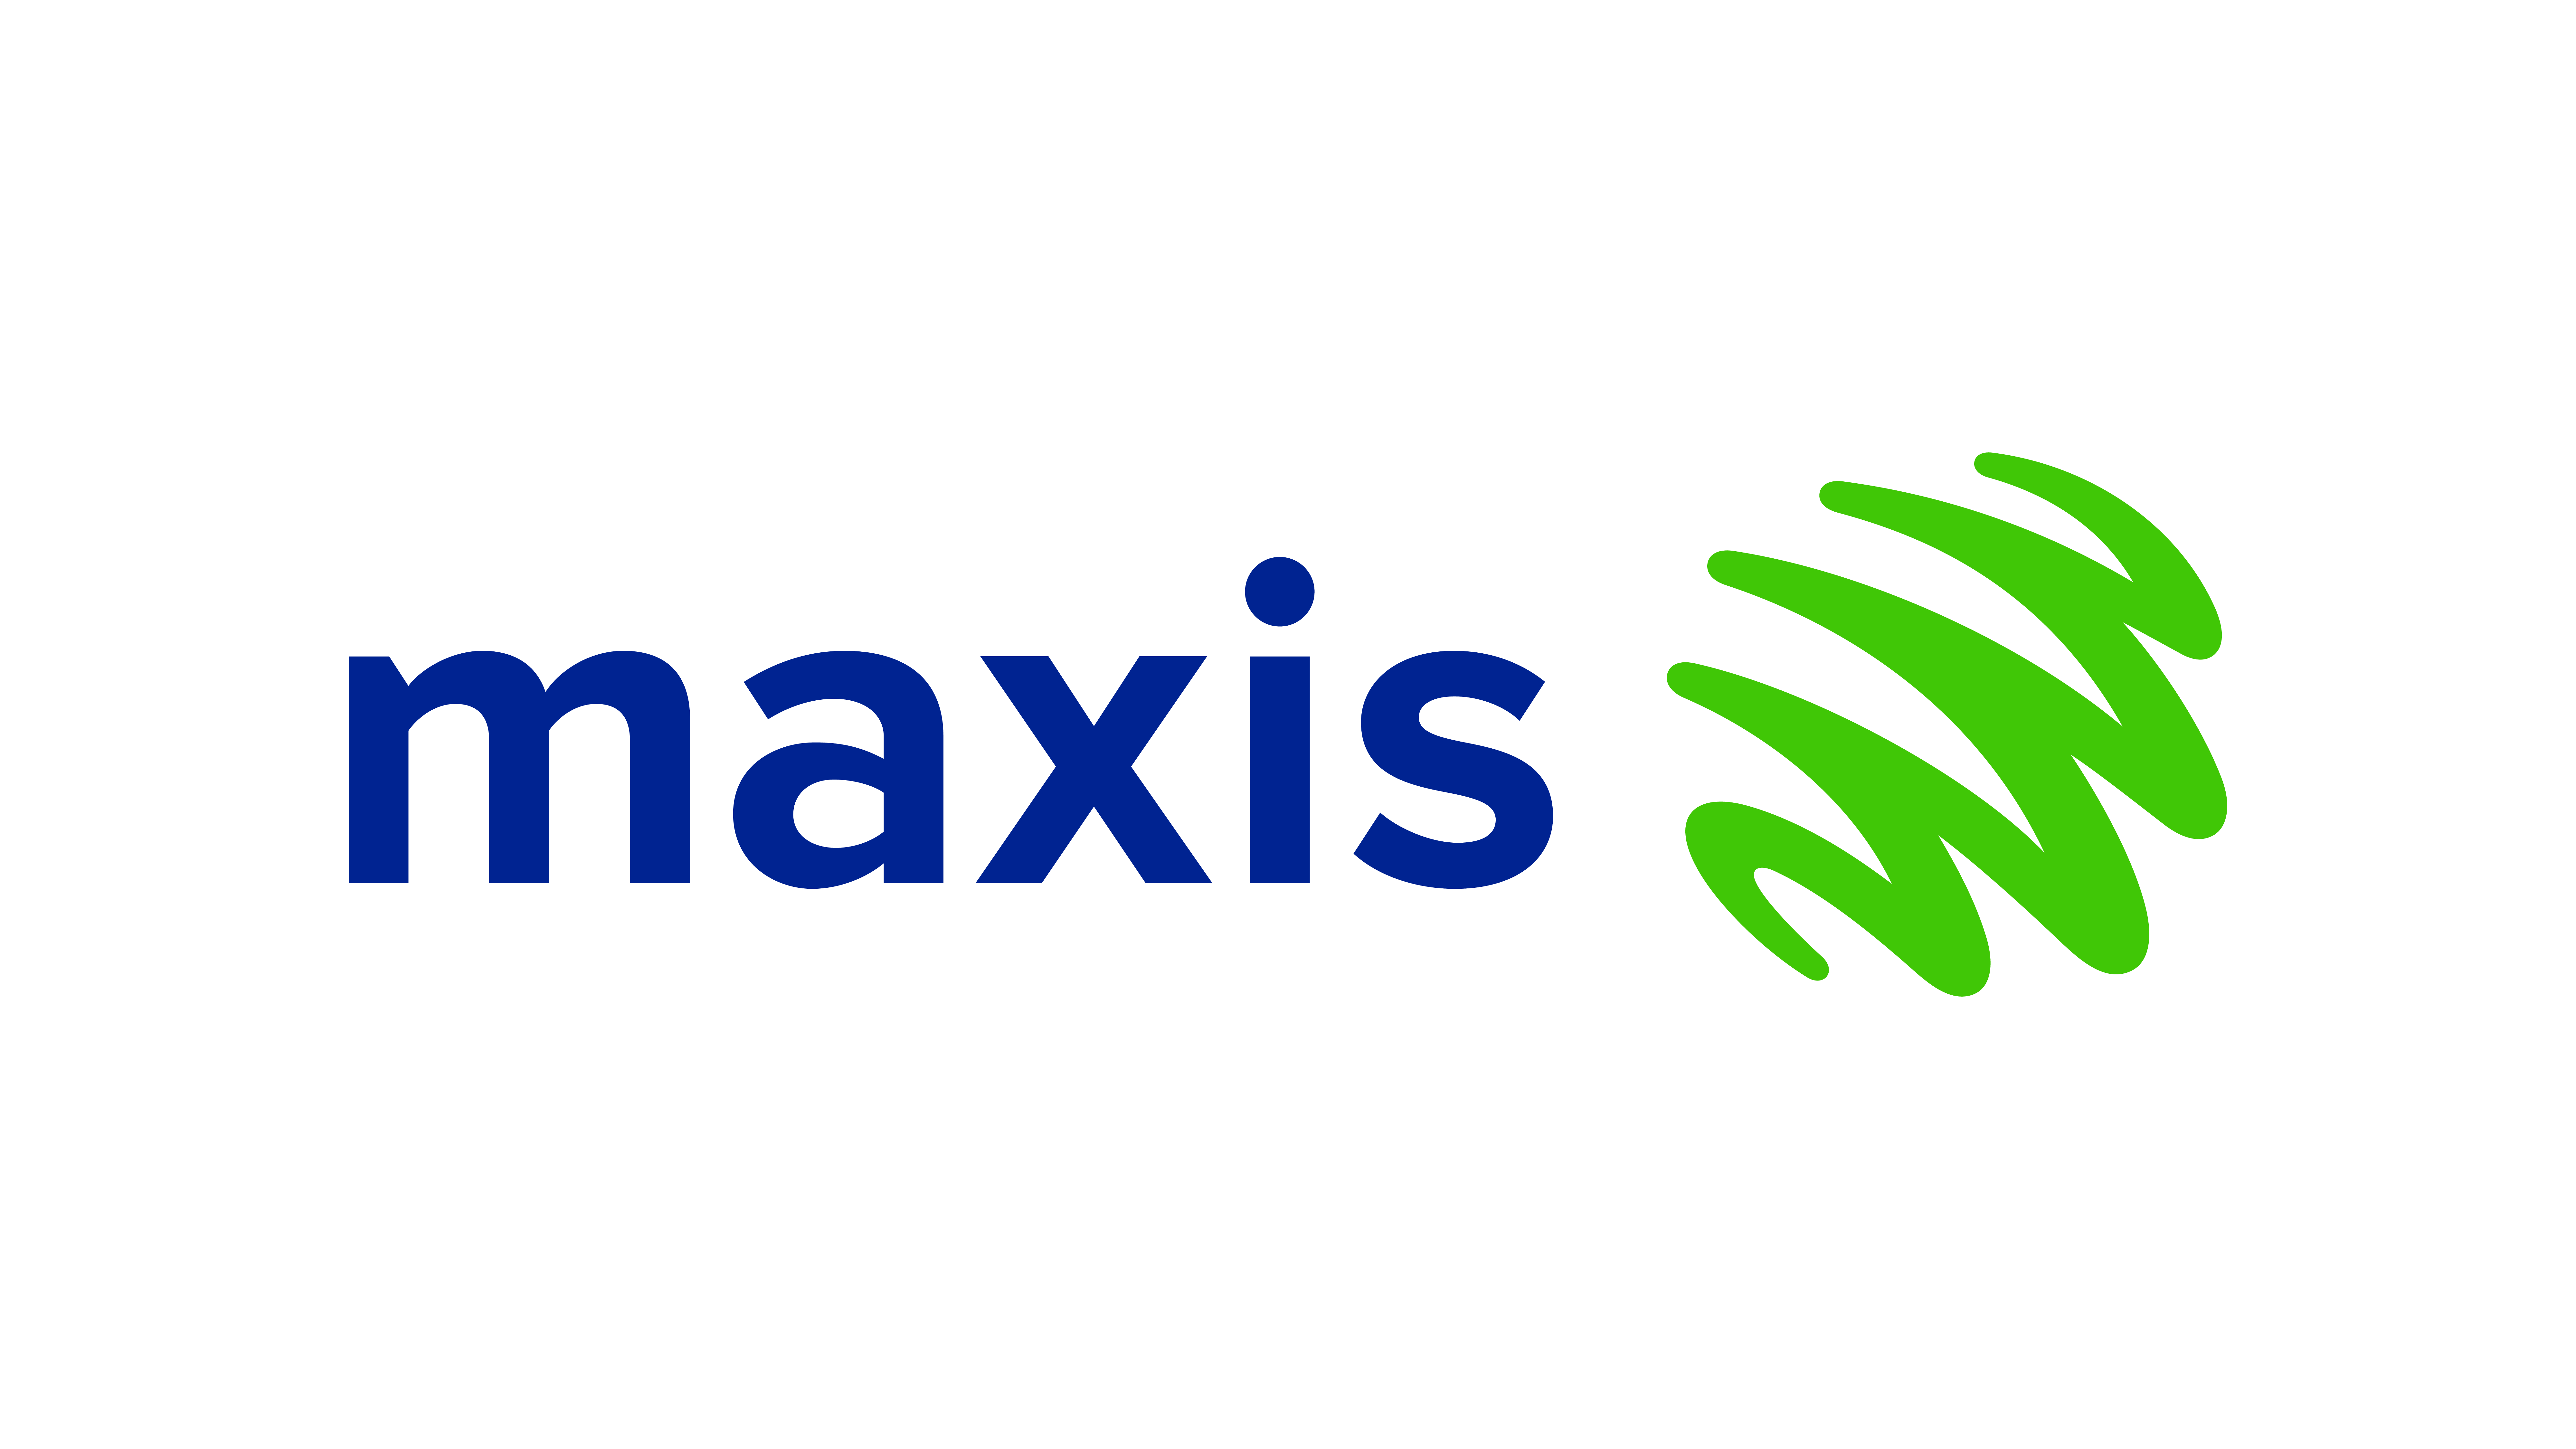 Maxis strengthens one stop cloud solution capabilities with latest acqui-hire 18